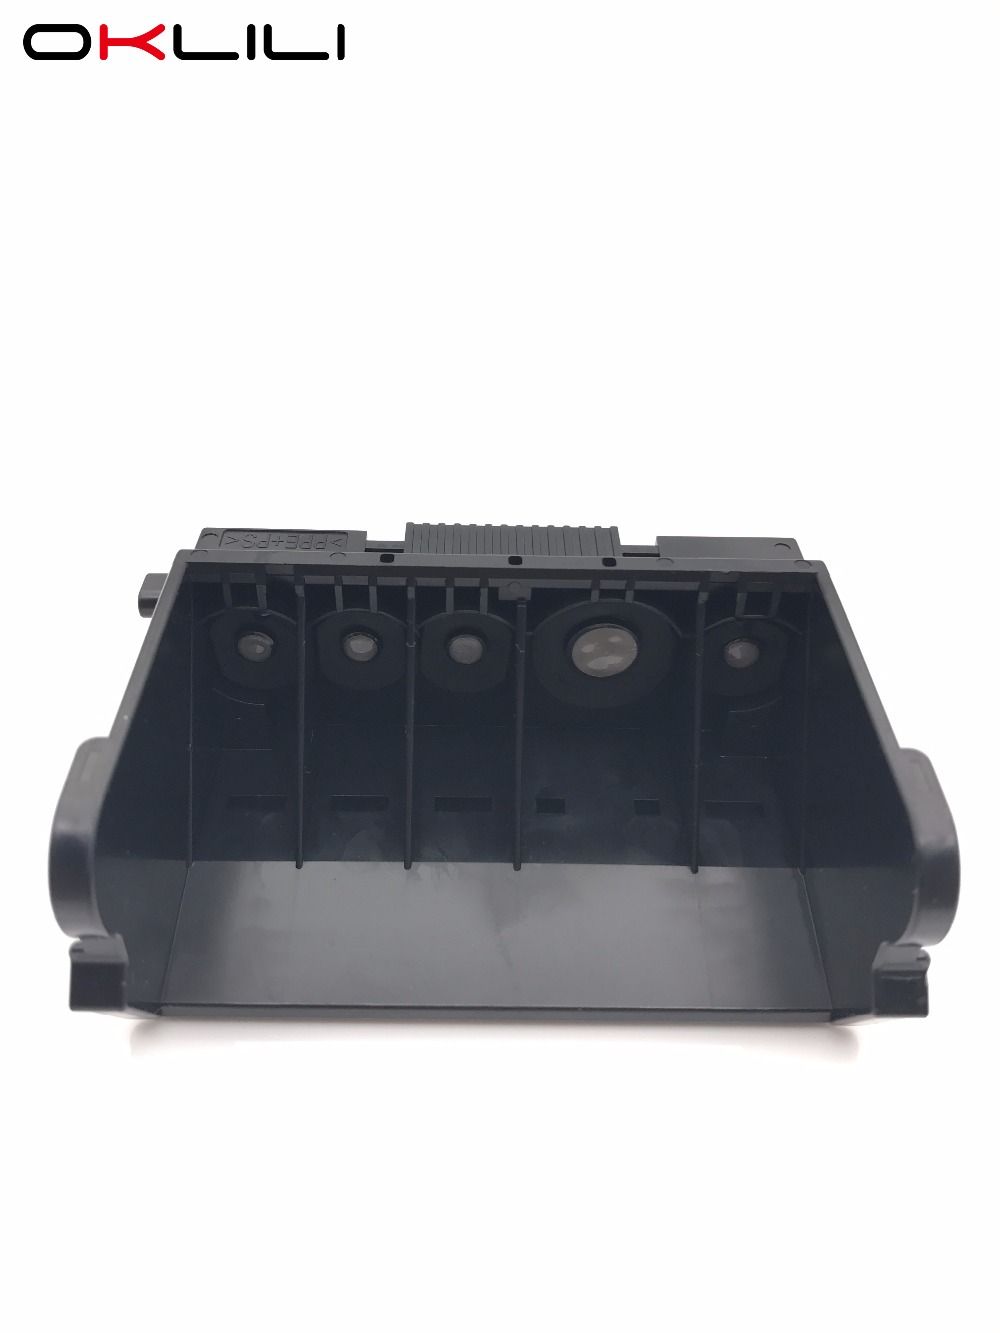 OKLILI ORIGINAL QY6-0059 QY6-0059-000 Printhead Print Head Printer Head for Canon iP4200 MP500 MP530